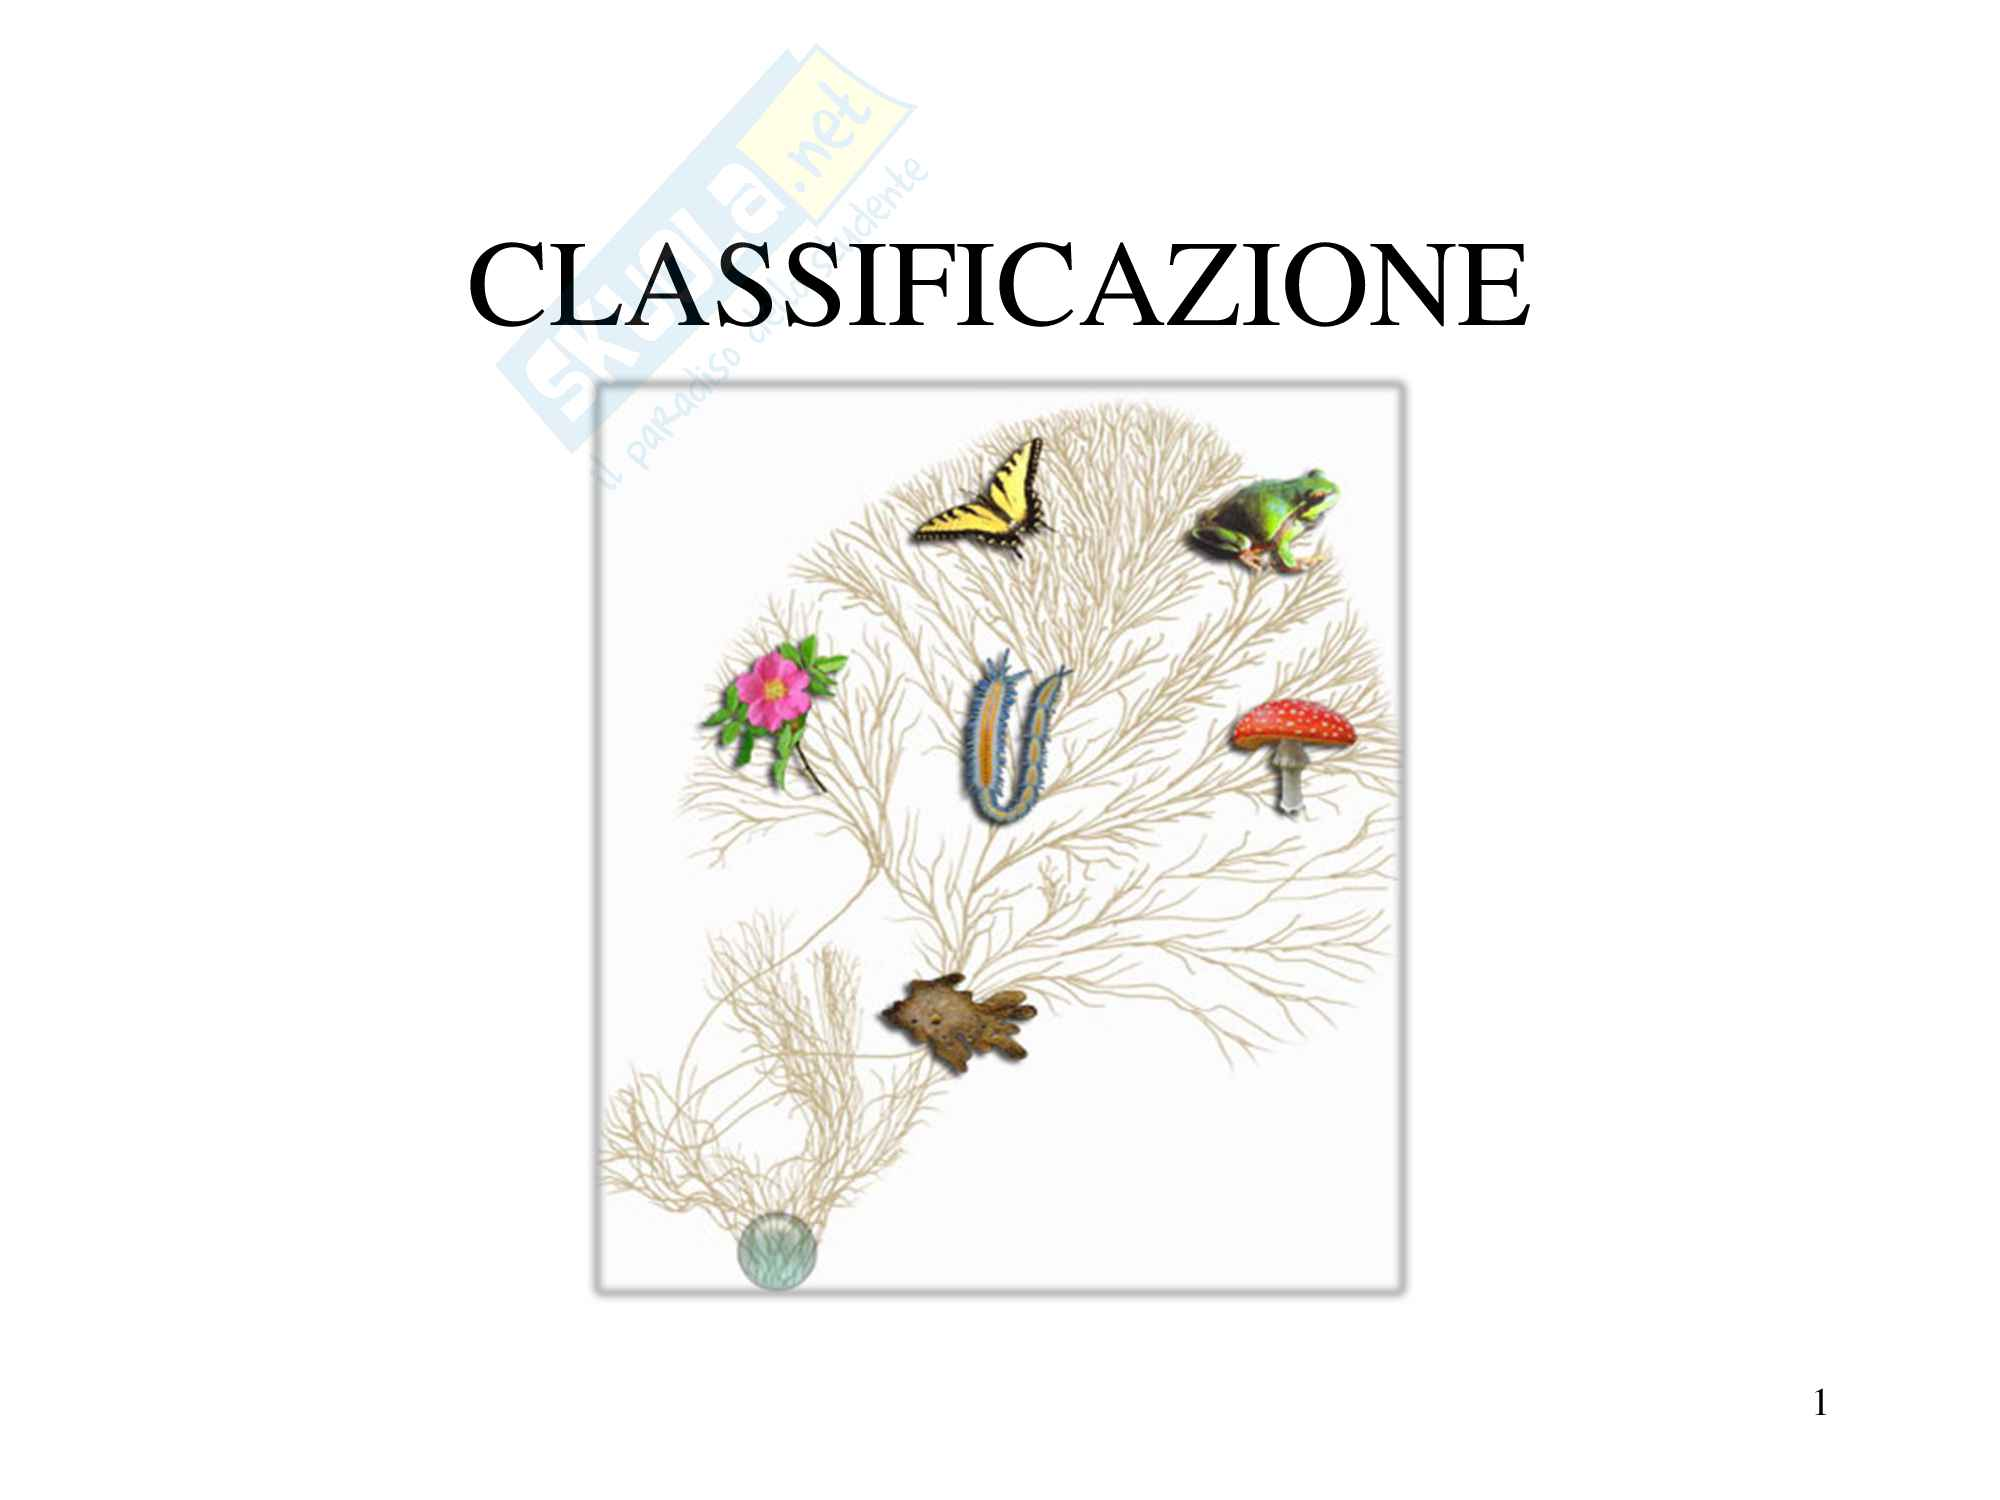 Classificazione e sistematica, zoologia, scienze biologiche